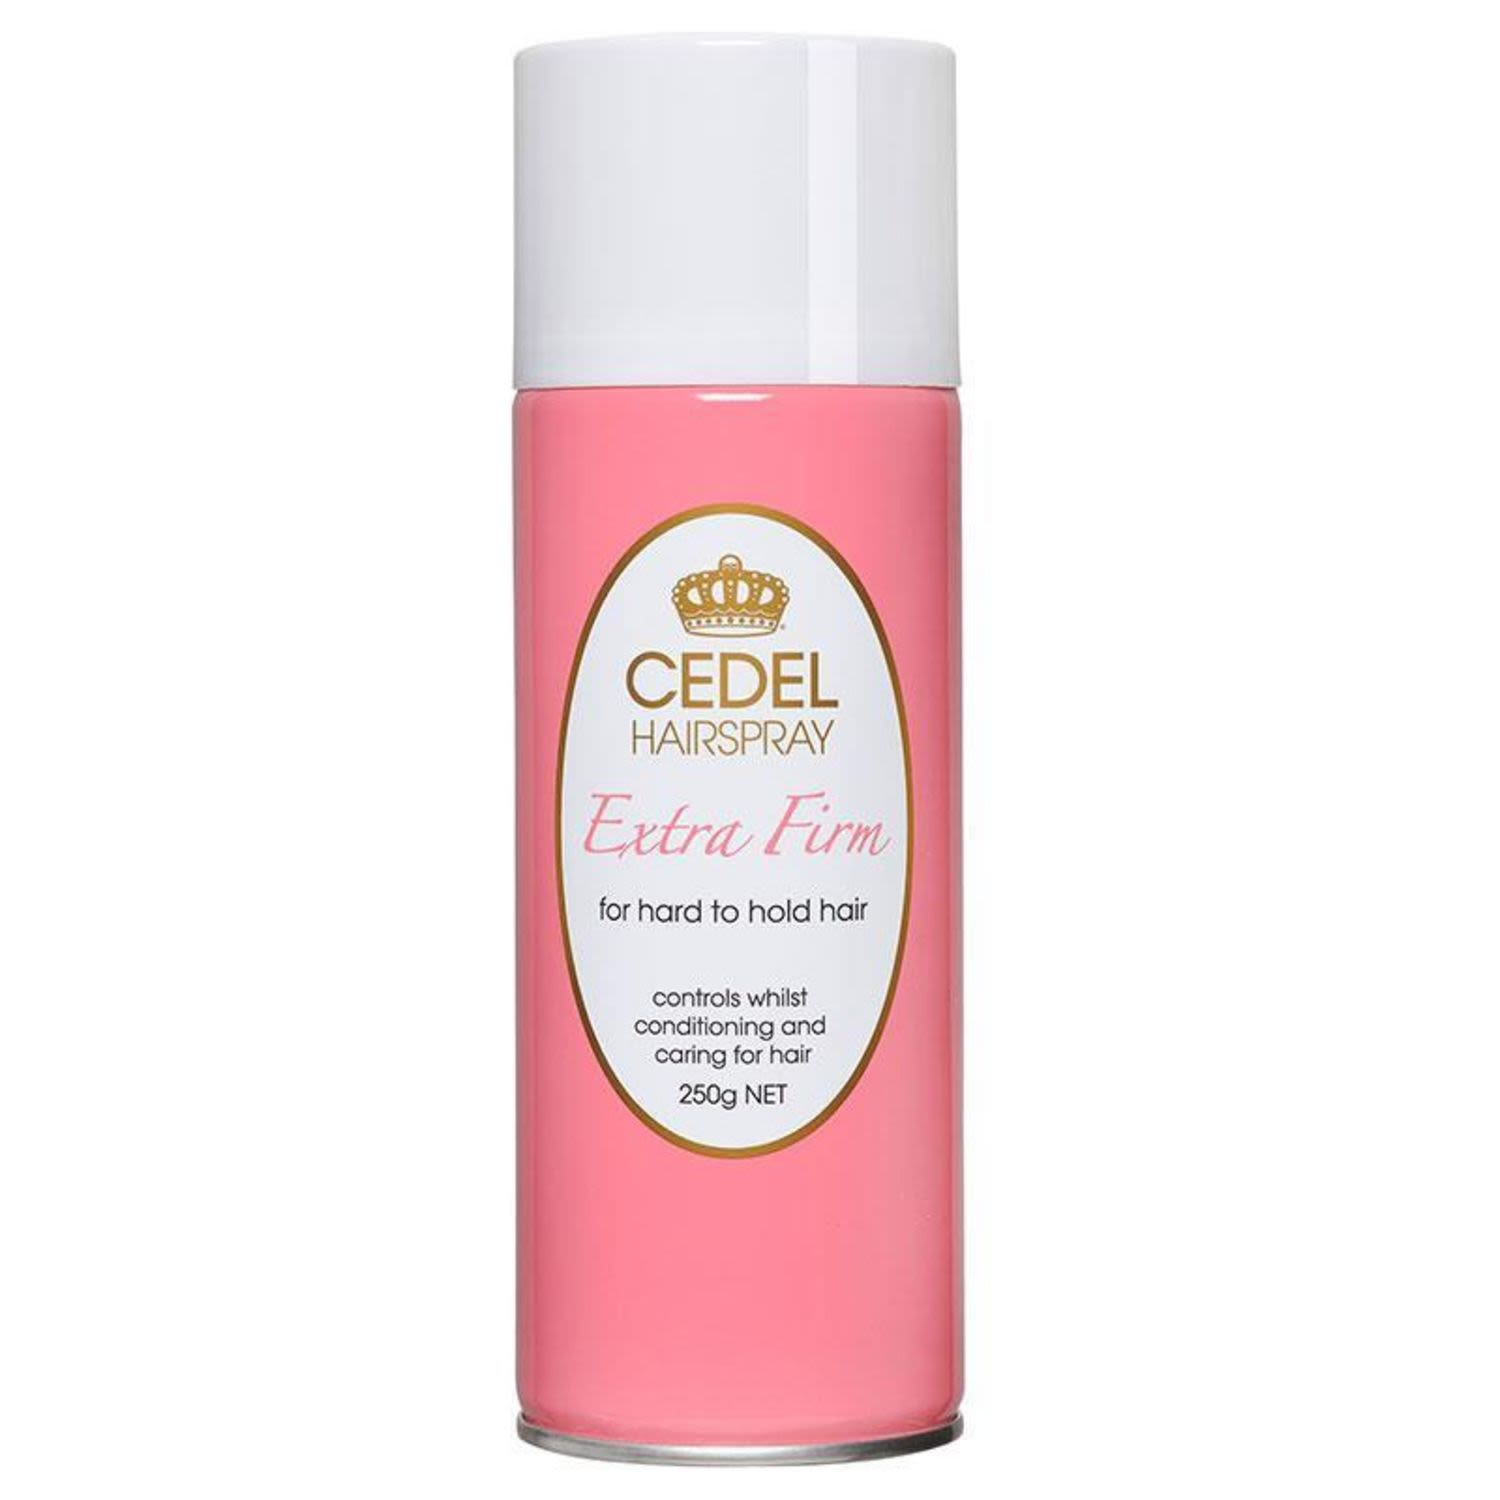 Cedel Hair Spray Extra Firm For Hard To Hold Hair, 250 Gram